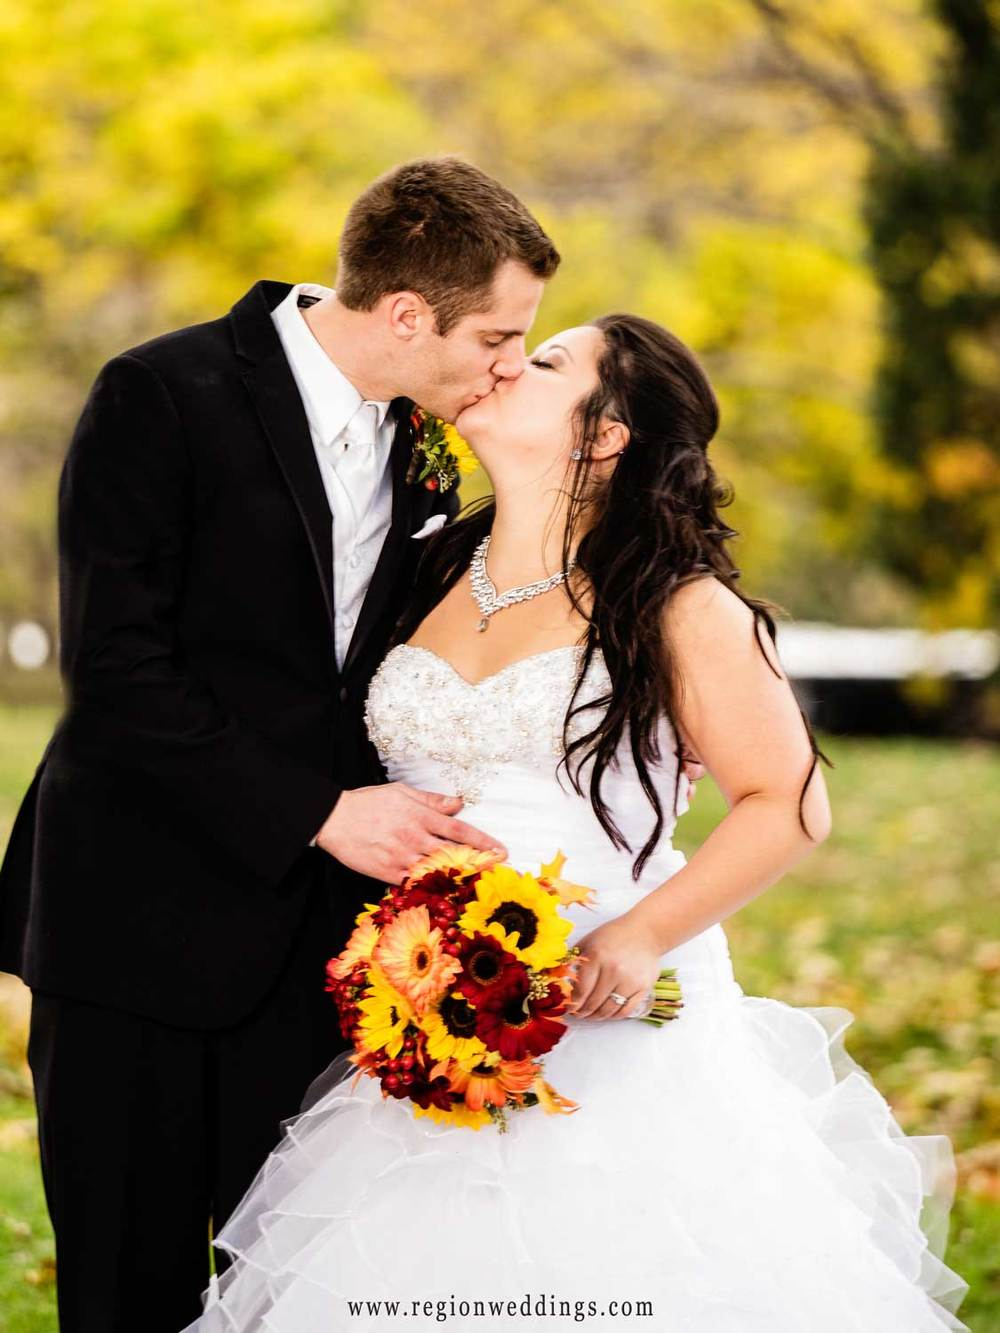 Fall colors in the background as the bride and groom kiss near Lincoln Park.